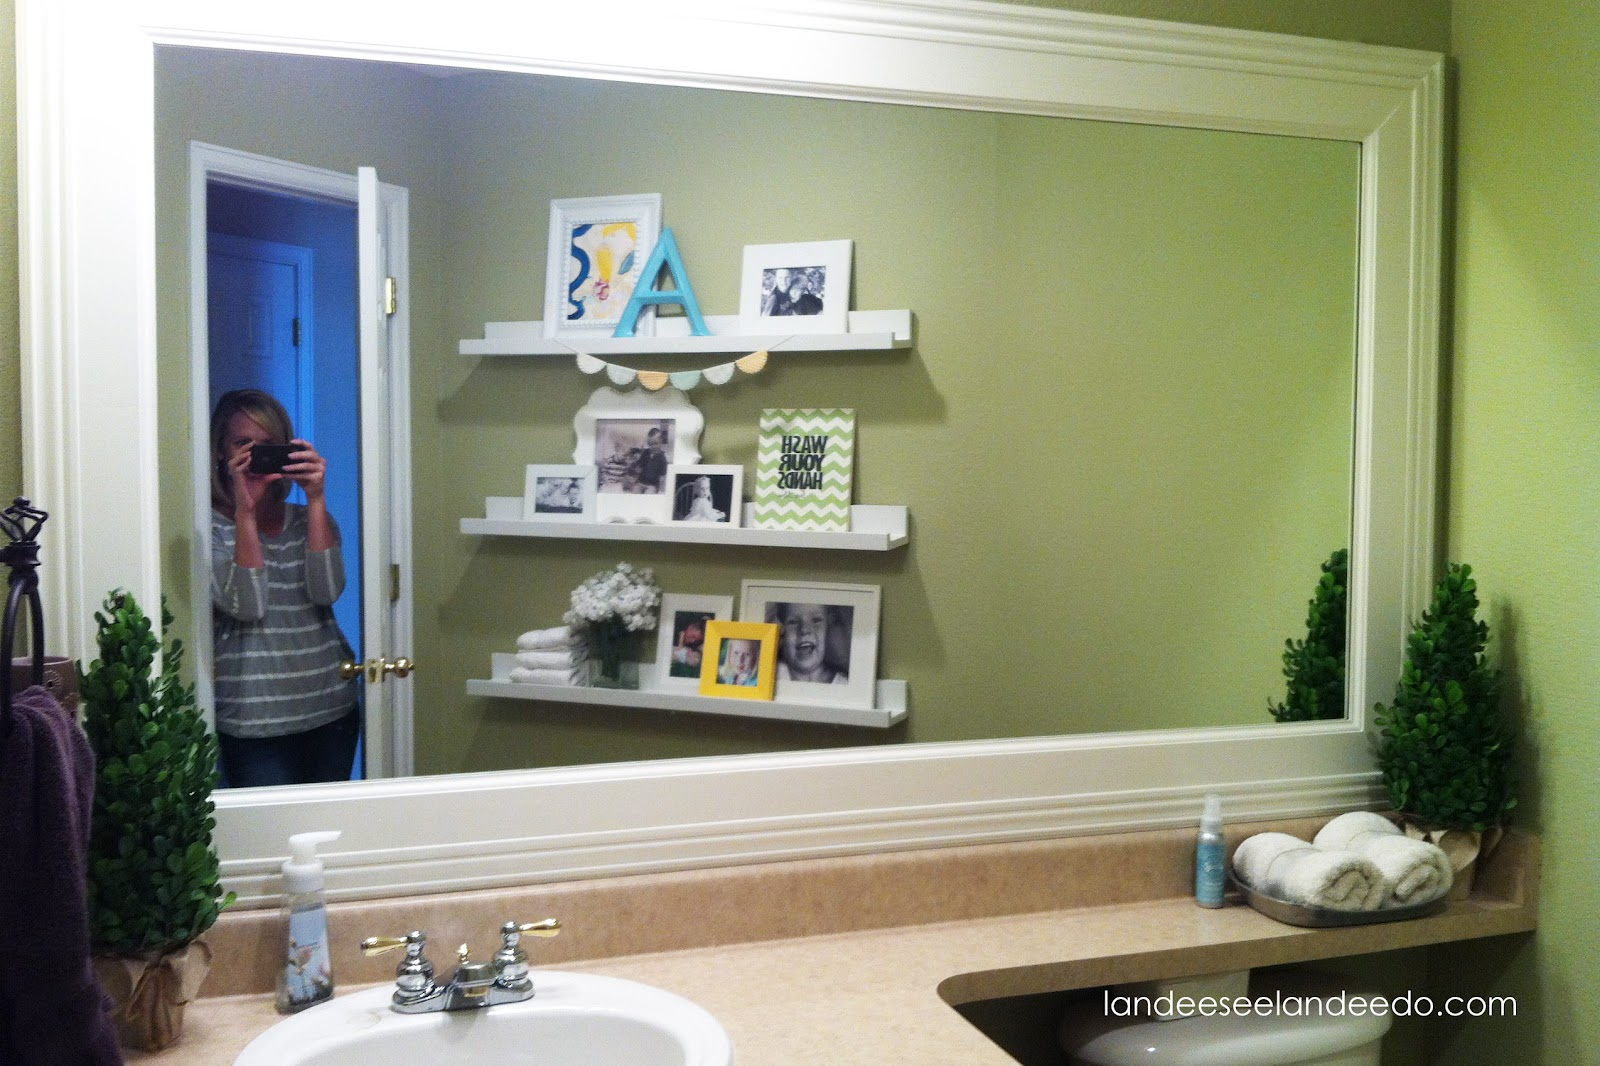 floating bathroom shelves awesome design   a1houston. White Bathroom Shelves Photo Gallery   1yellowpage com